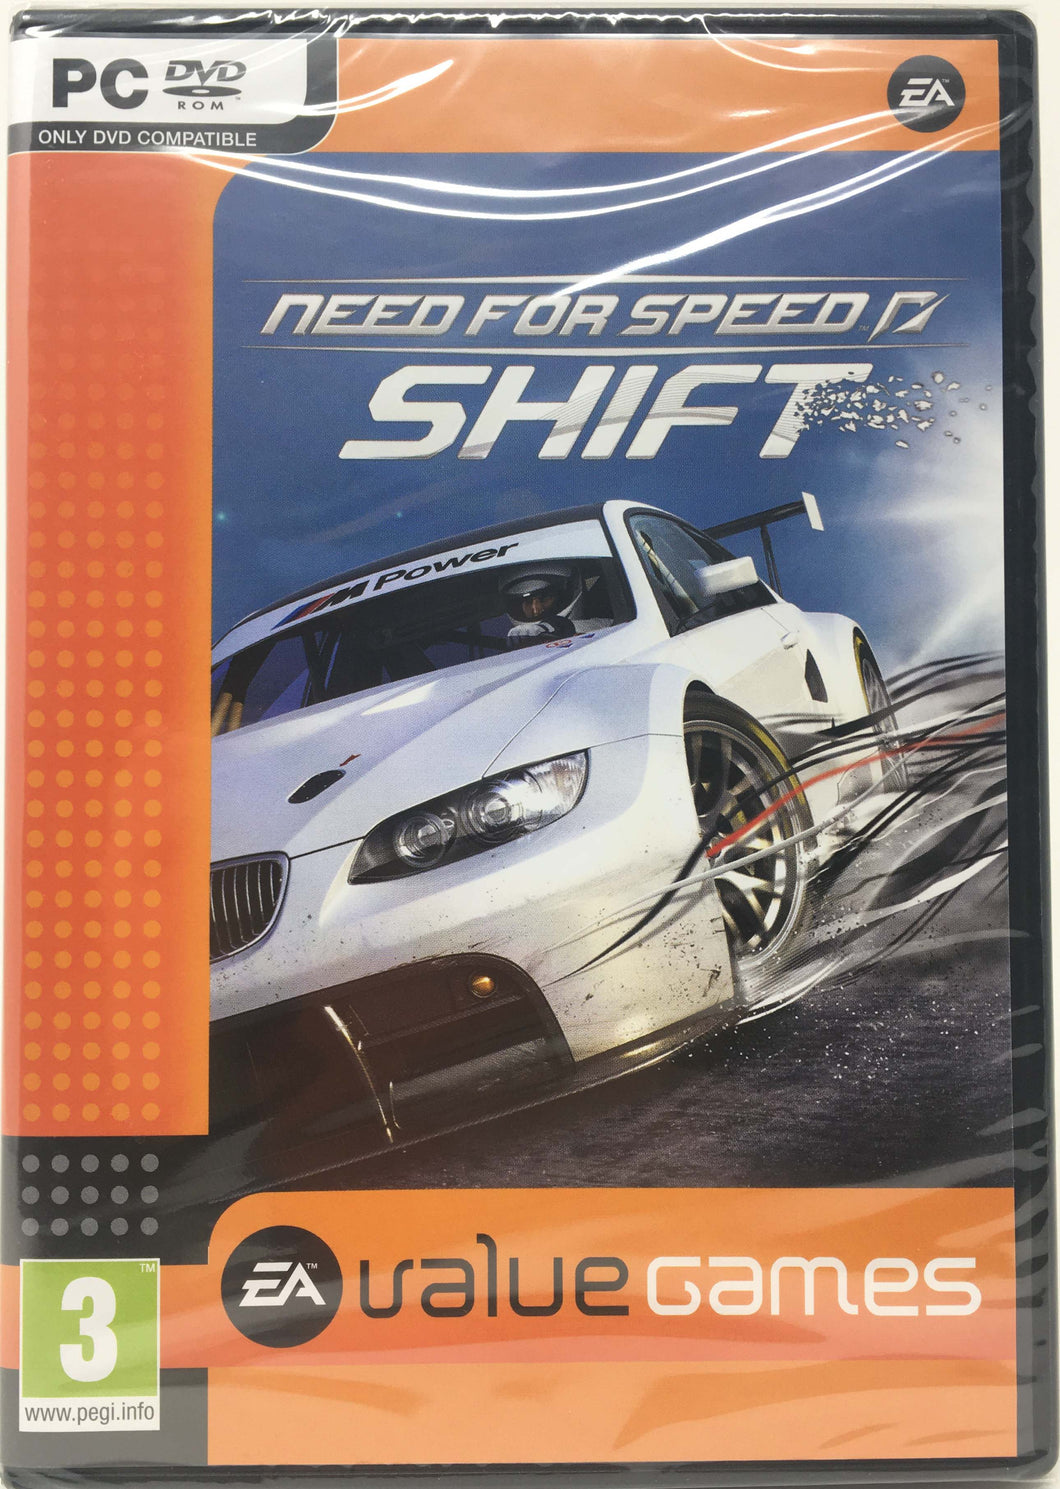 Need for Speed: Shift - PC [video game]